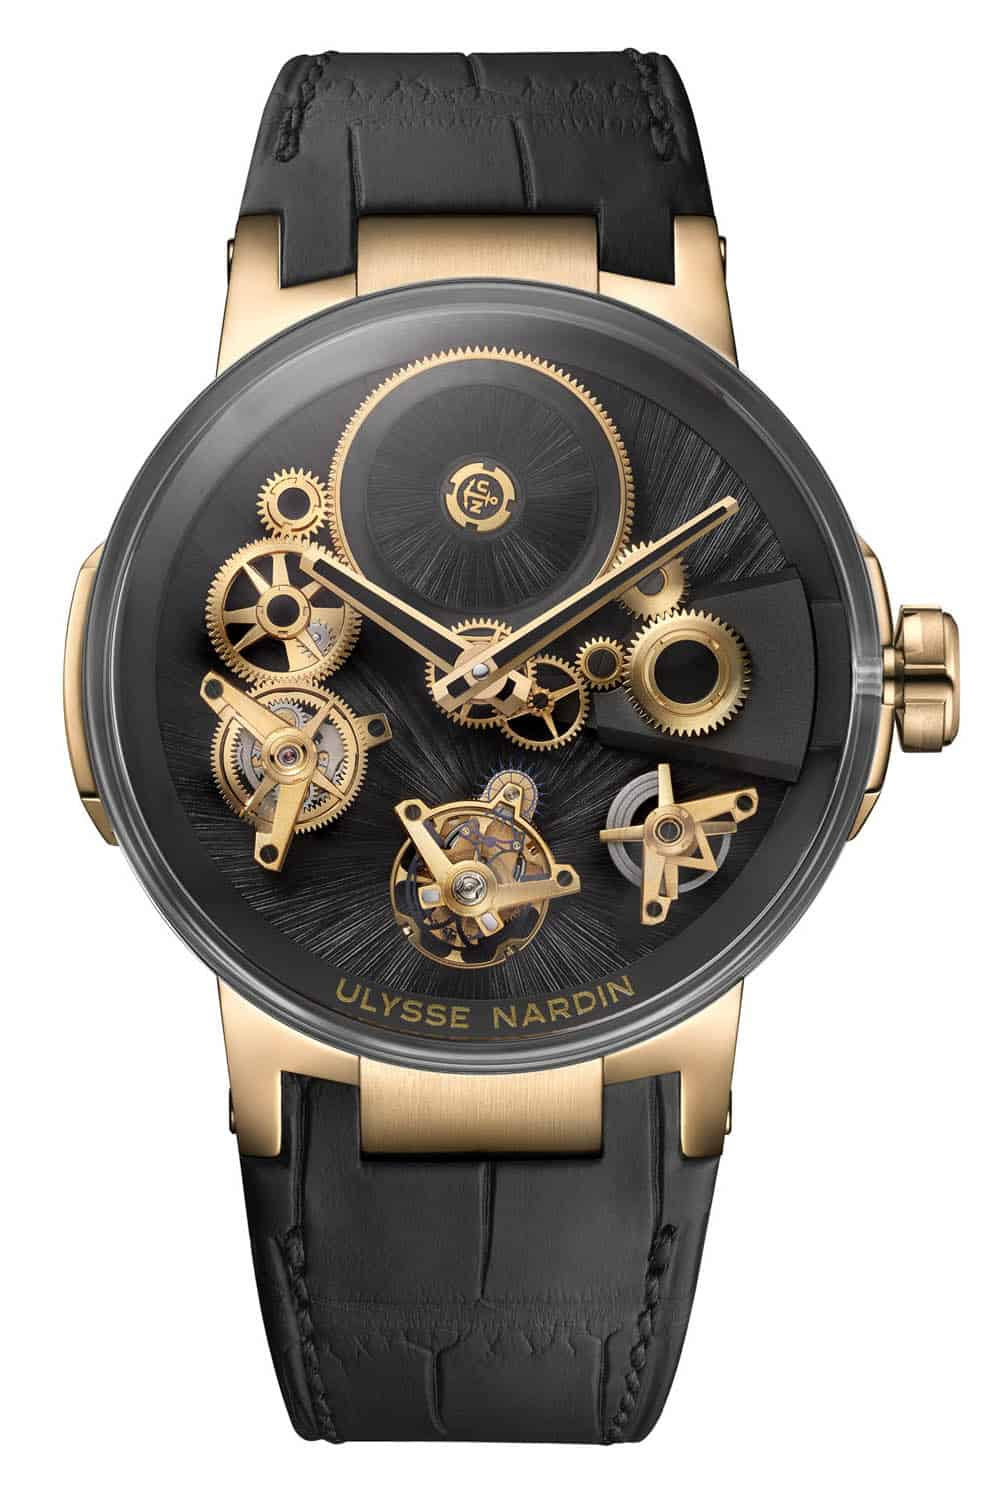 2019 Ulysse Nardin Executive Free Wheel 8